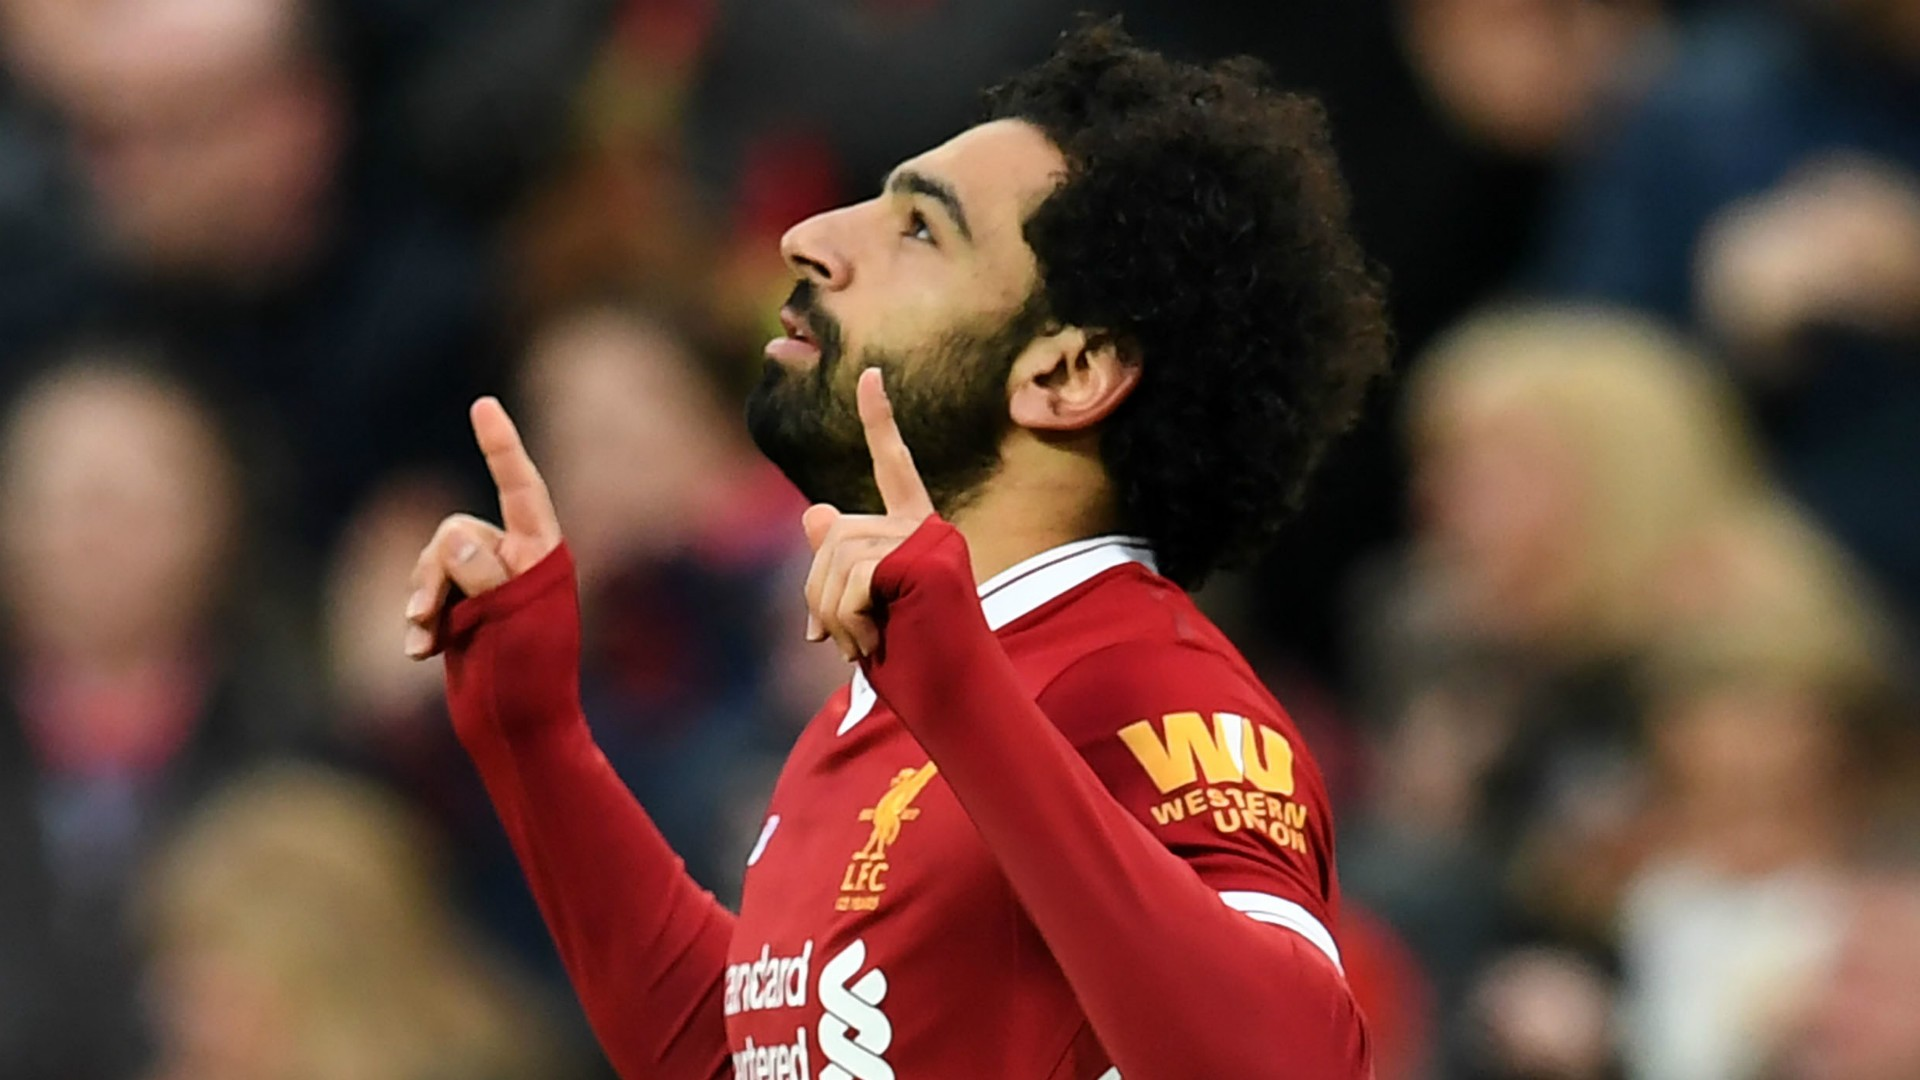 https://images.performgroup.com/di/library/GOAL/ff/af/mohamed-salah-liverpool_10k8b7qms5wx61byzmxxl3lzd8.jpg?t=1635890225&quality=90&w=0&h=1260